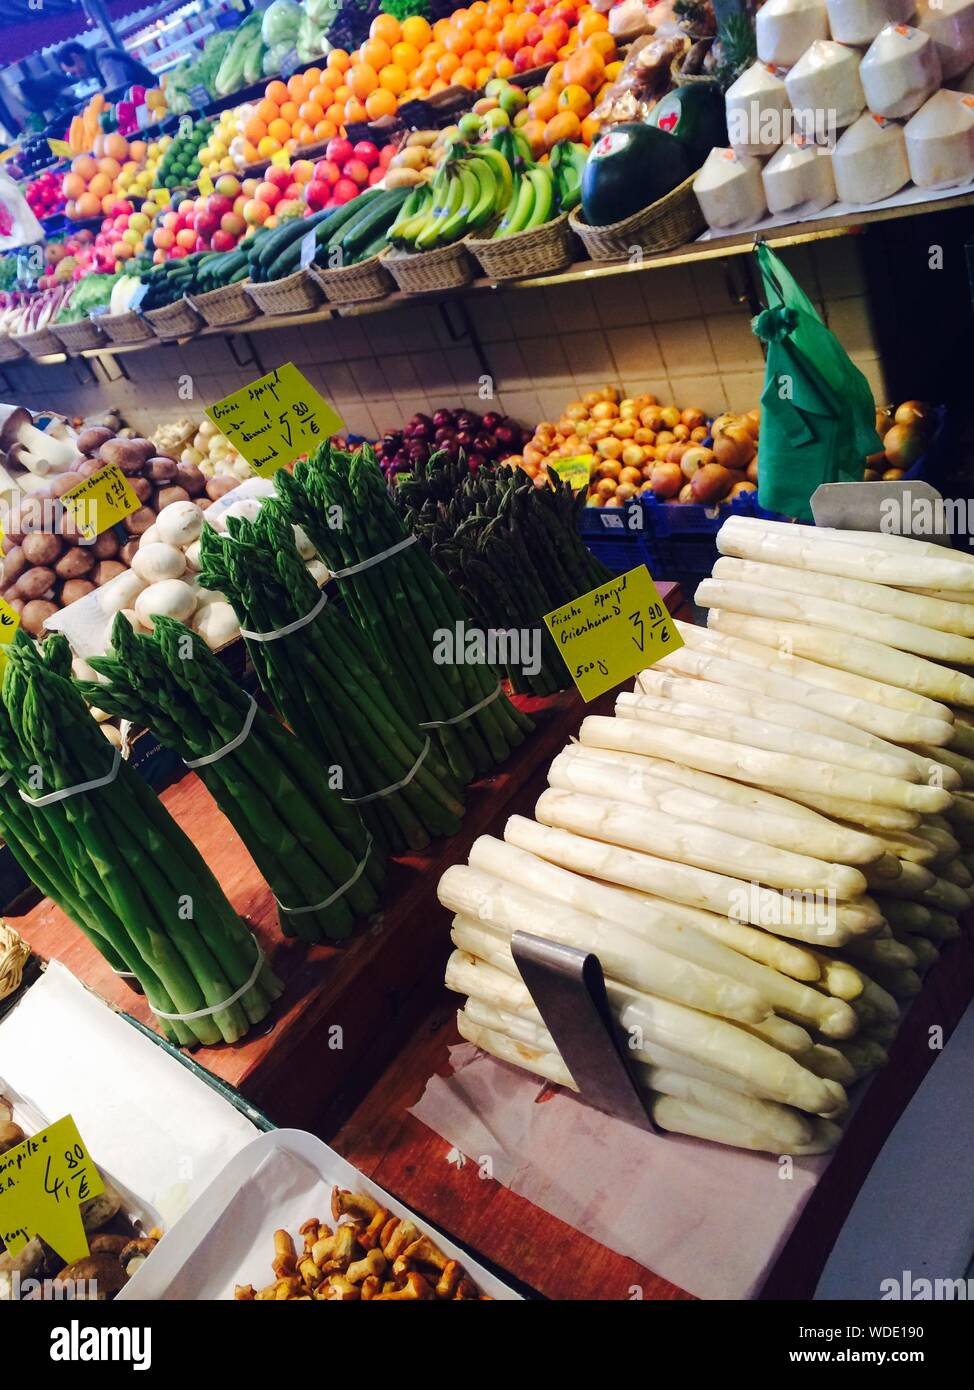 Various Vegetables And Fruits For Sale At Market Stock Photo